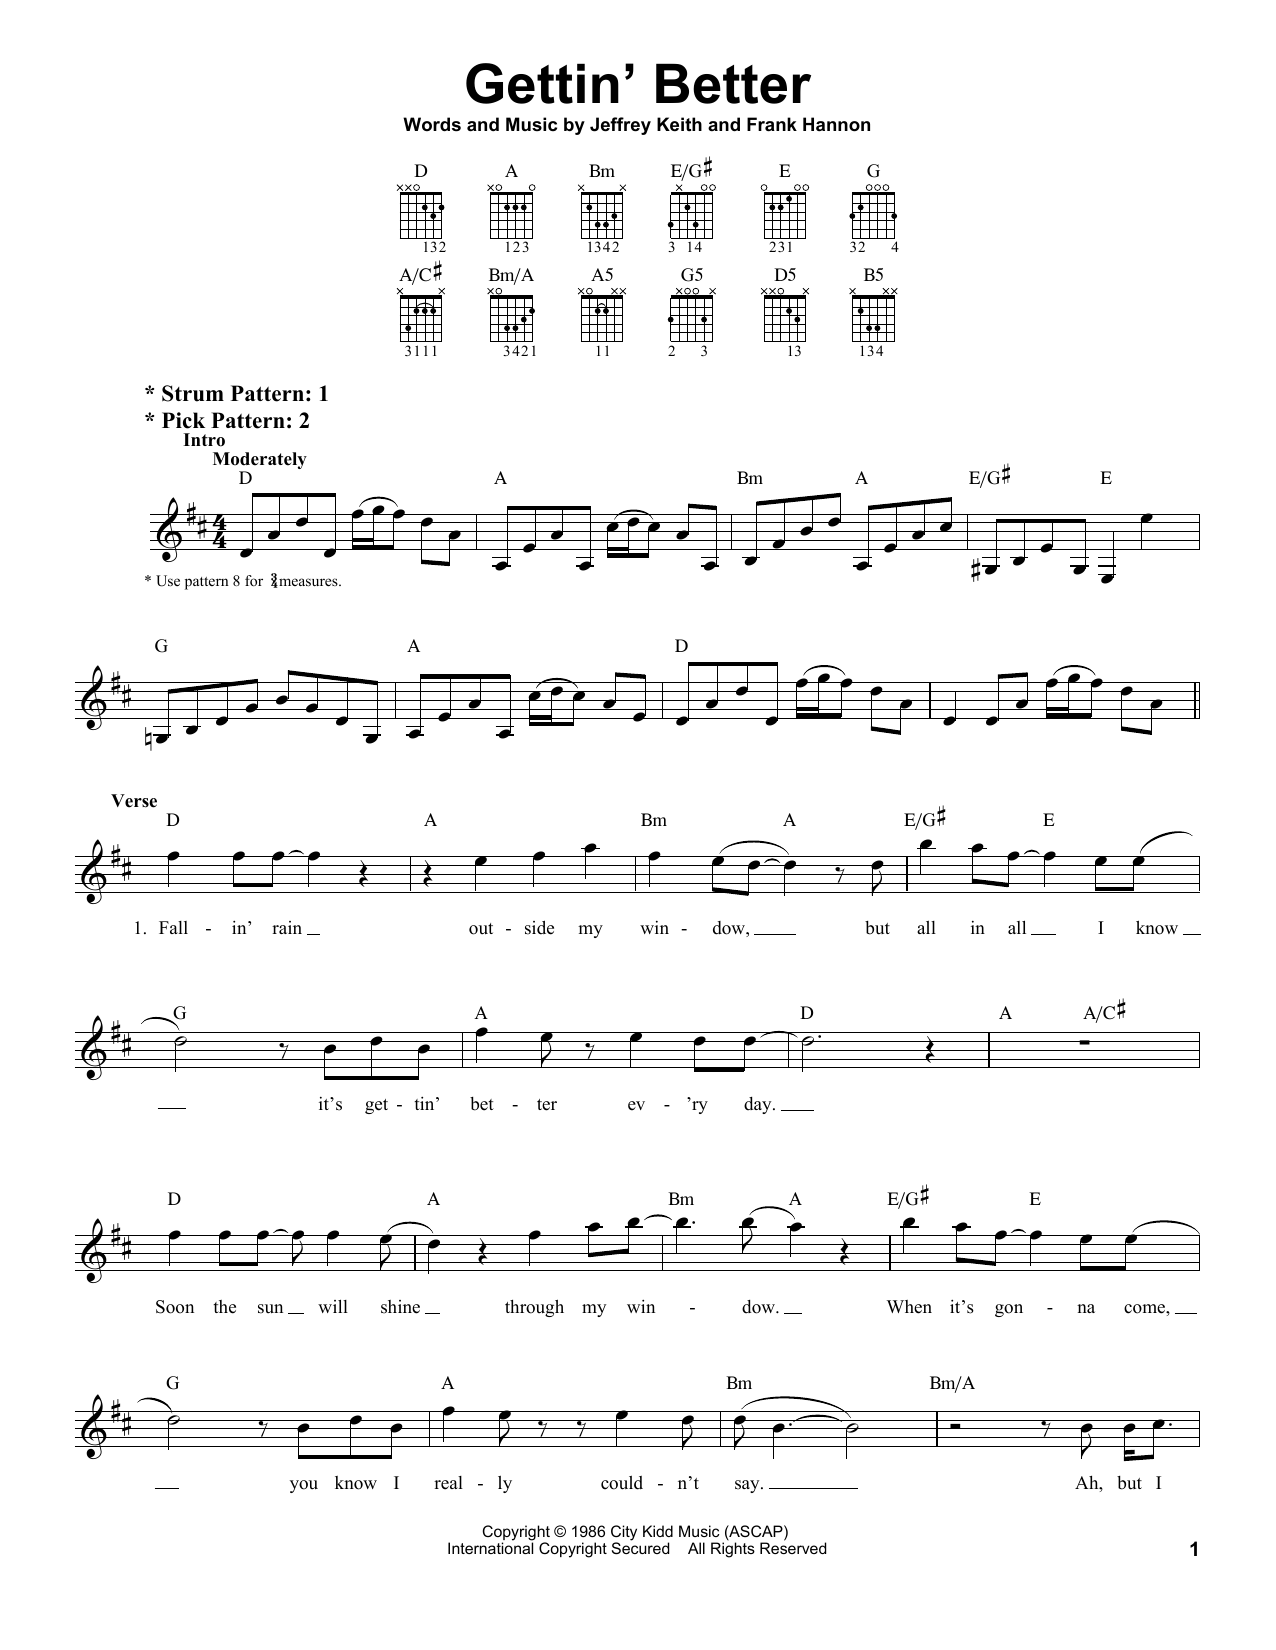 Gettin' Better Sheet Music